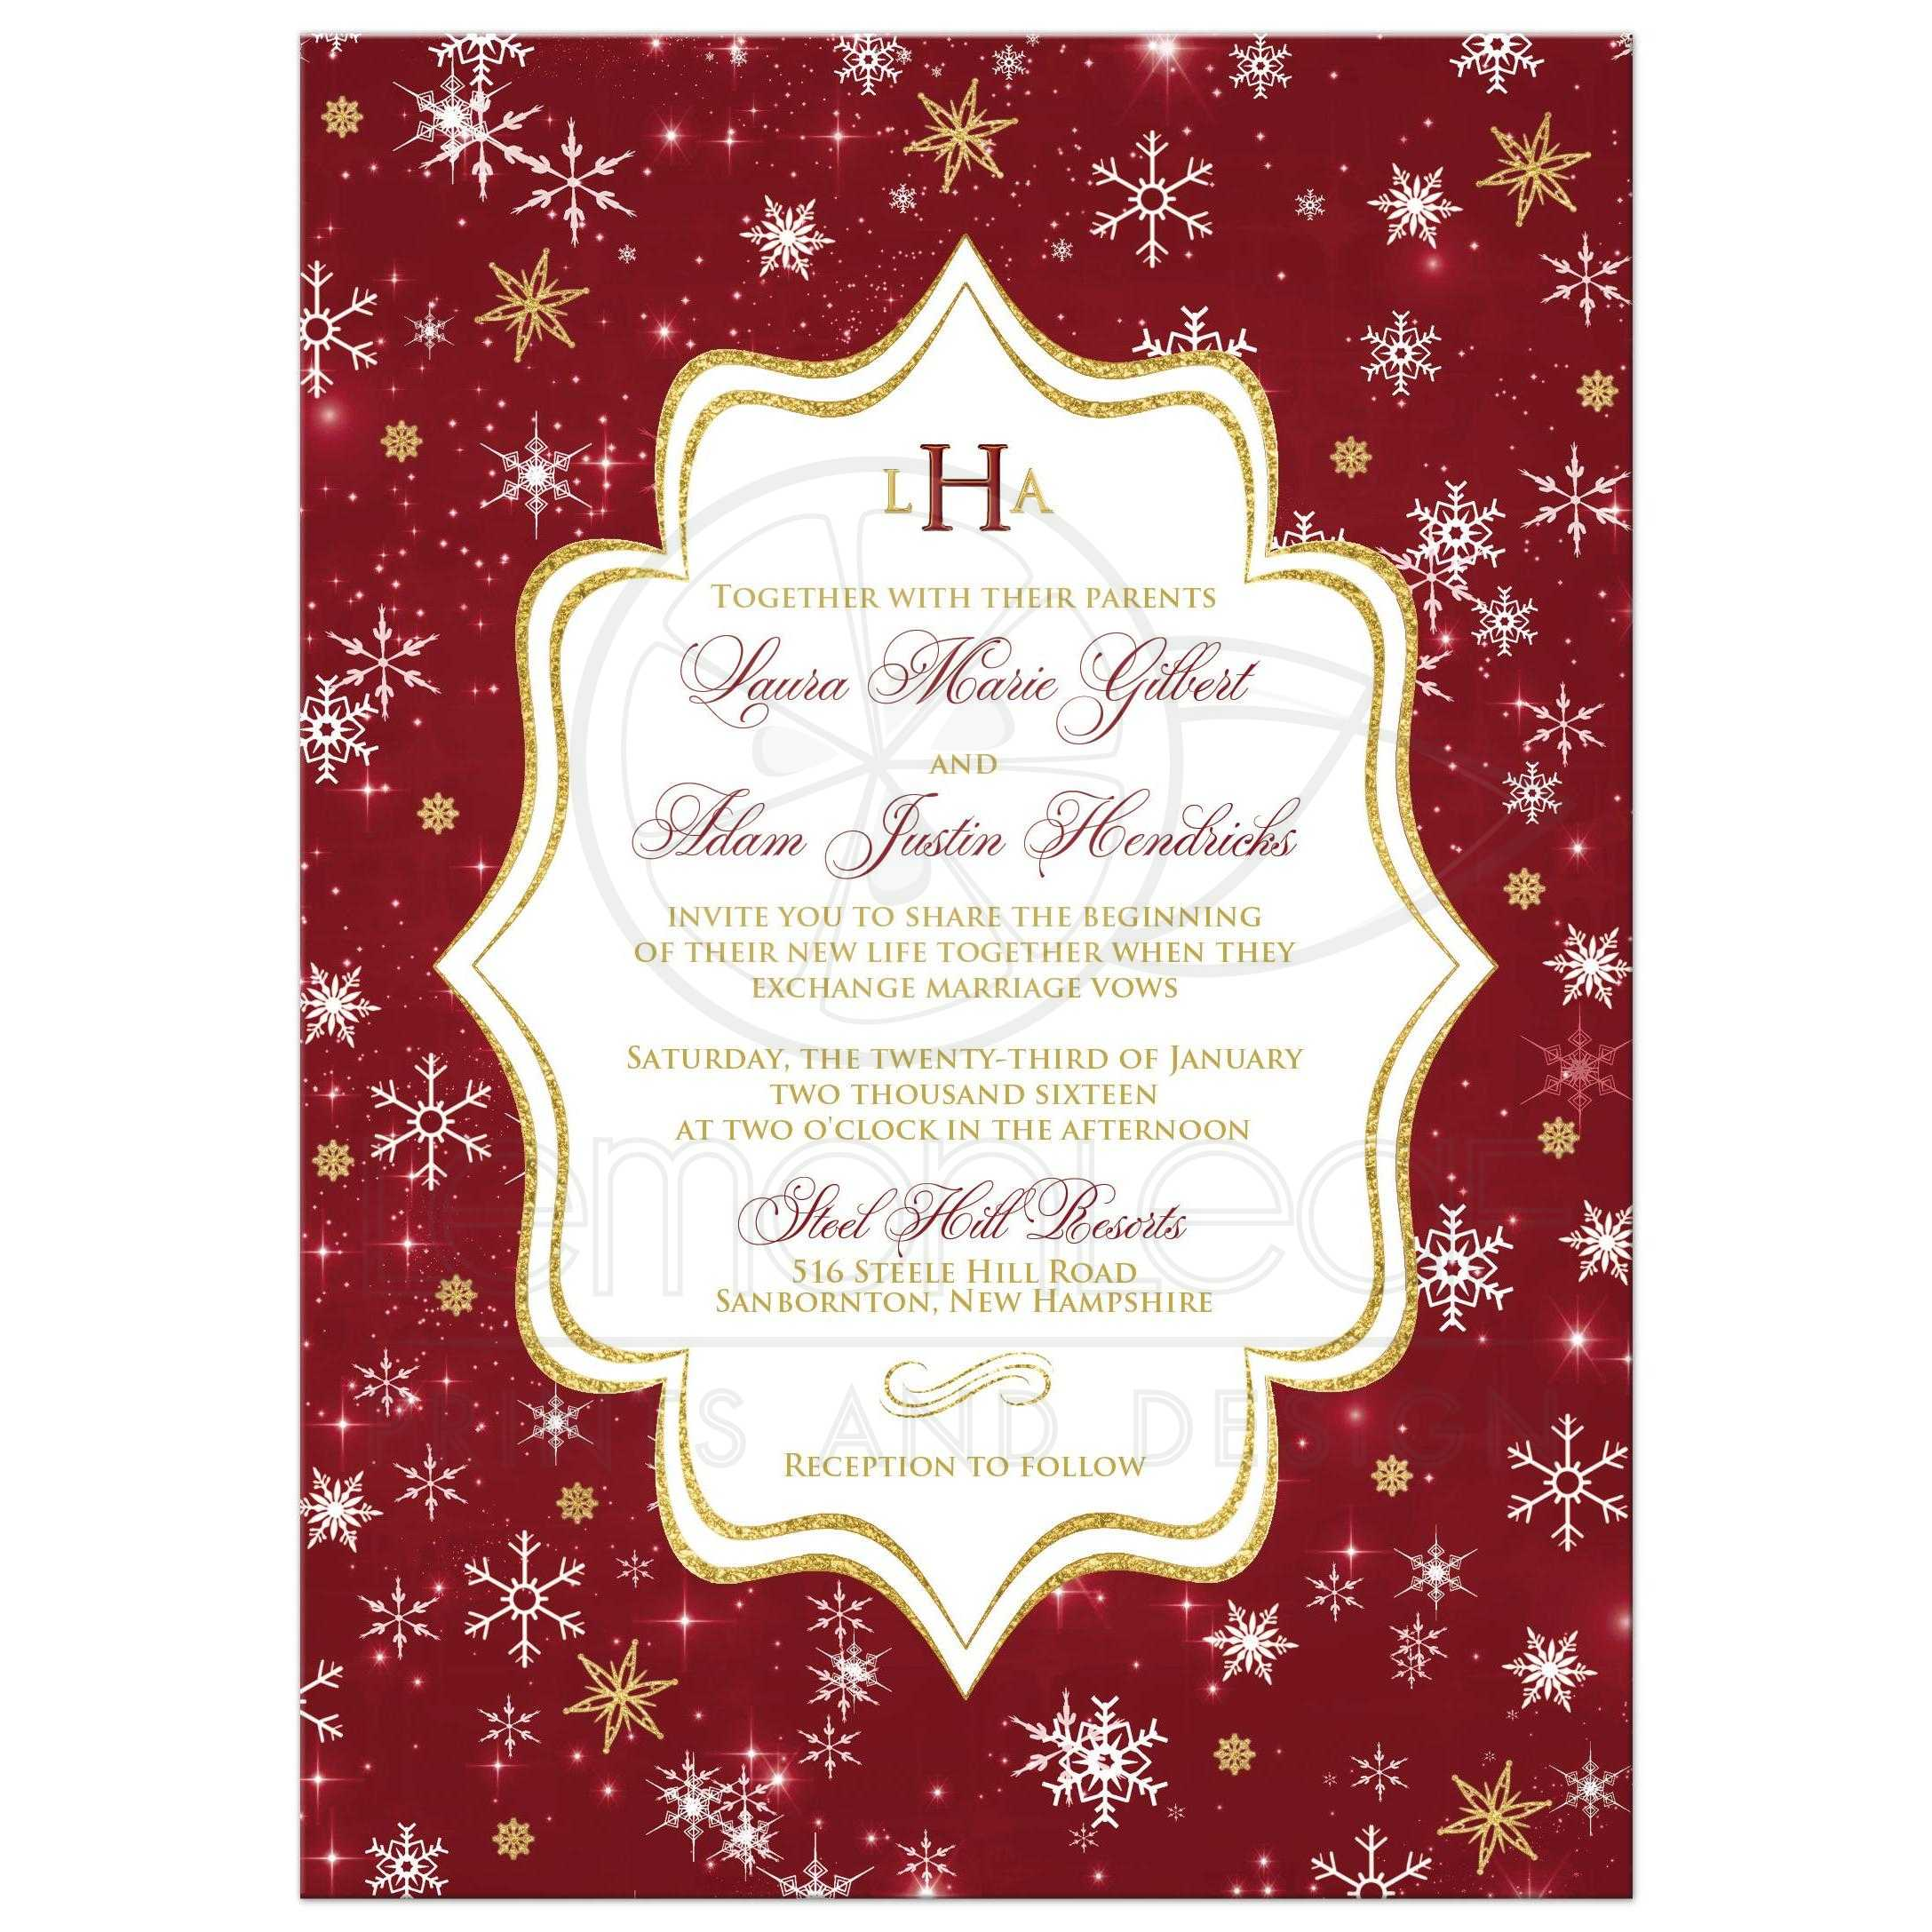 Monogrammed Wedding Invitation | Cranberry, Gold, White Snowflakes ...